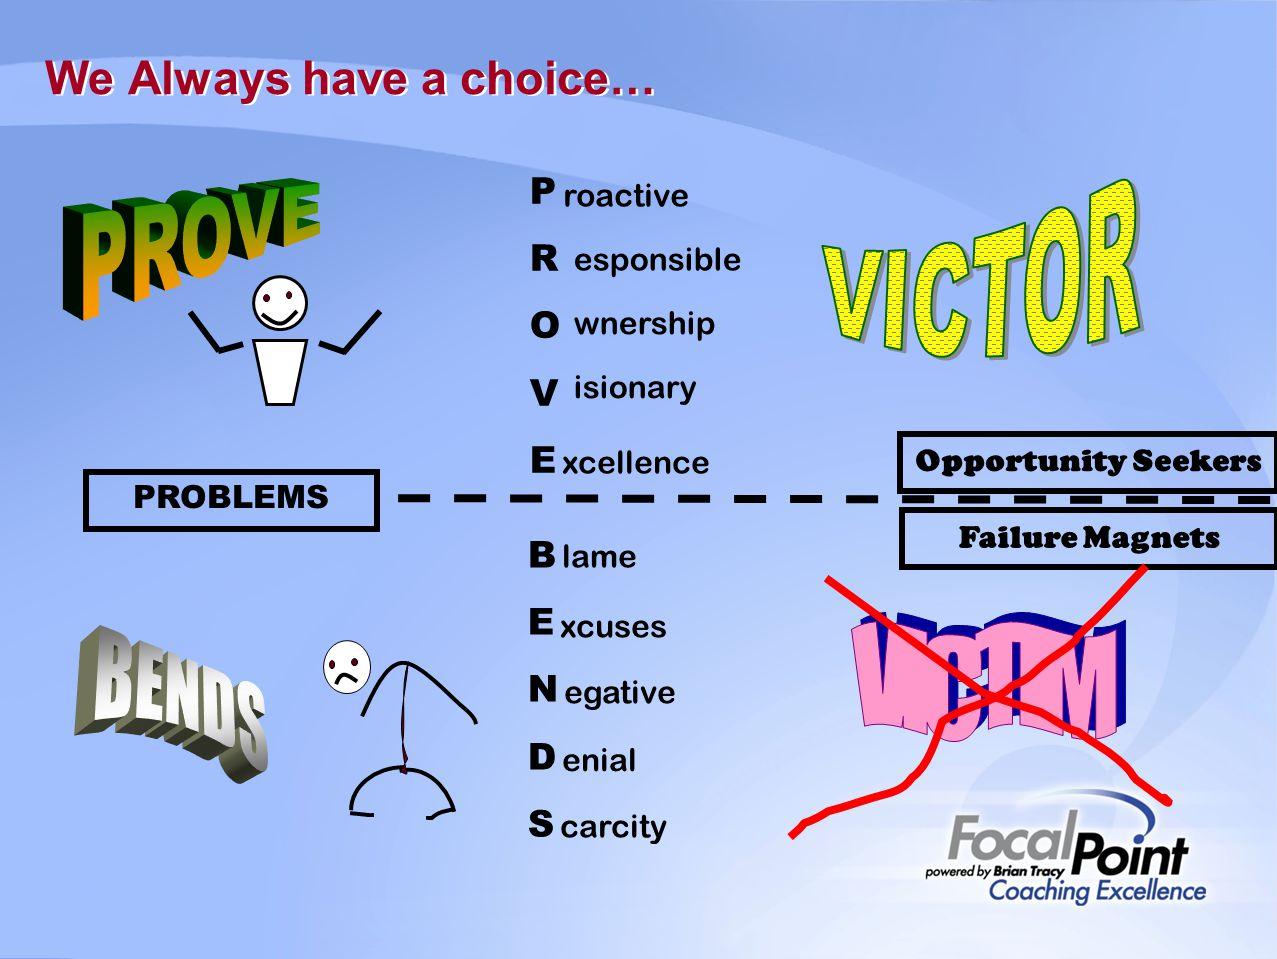 We Always have a choice… Failure Magnets Opportunity Seekers PROVEPROVE roactive esponsible wnership isionary xcellence BENDSBENDS lame xcuses egative enial carcity PROBLEMS